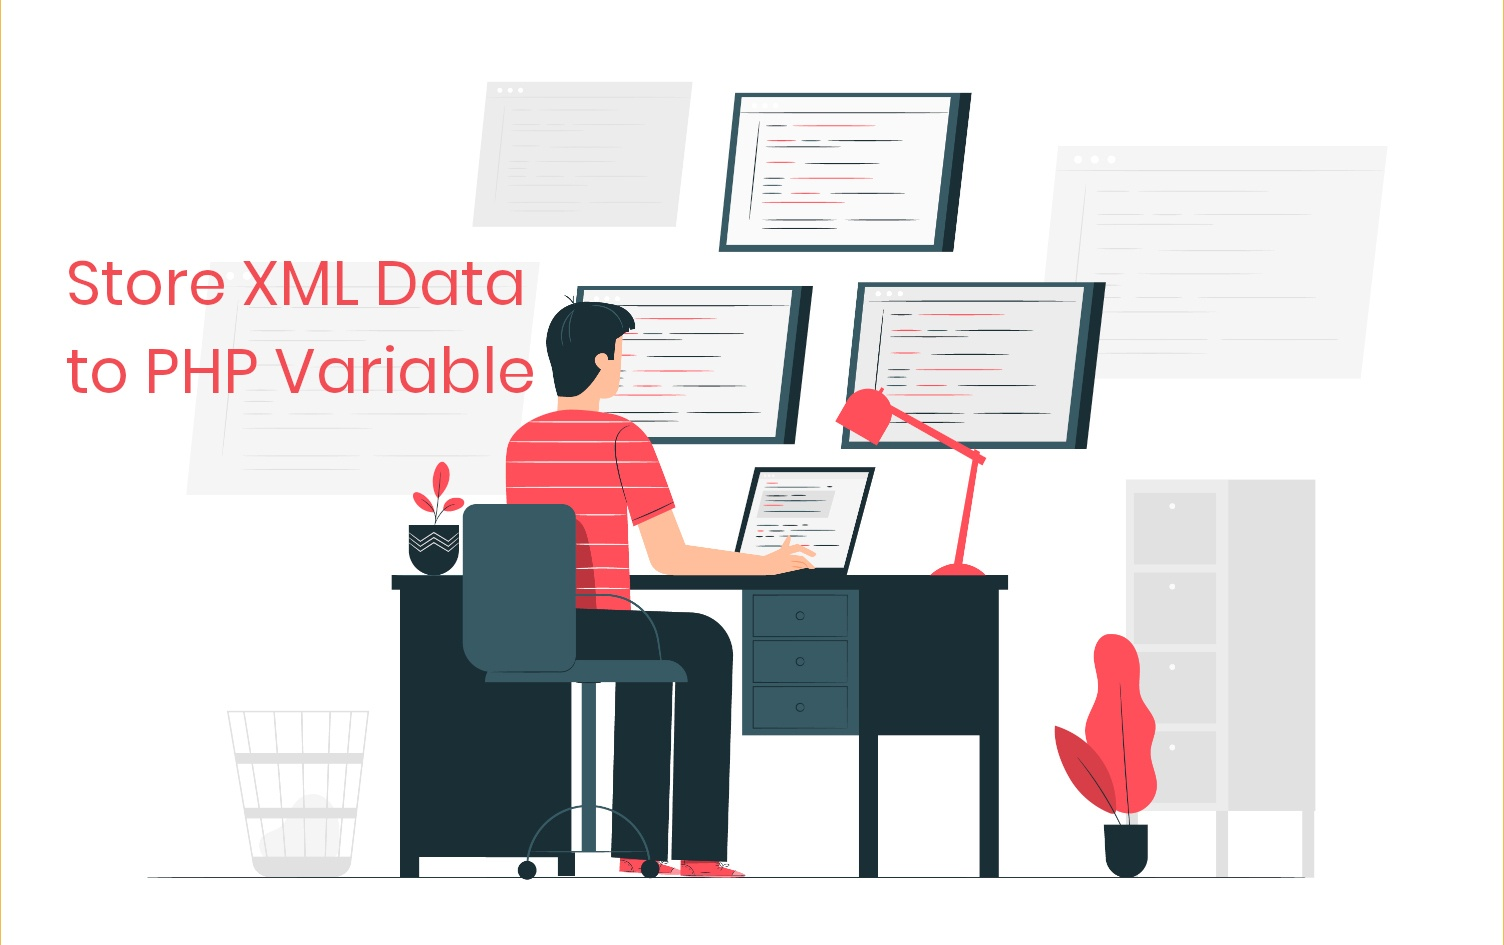 How to Store XML Data to PHP Variable